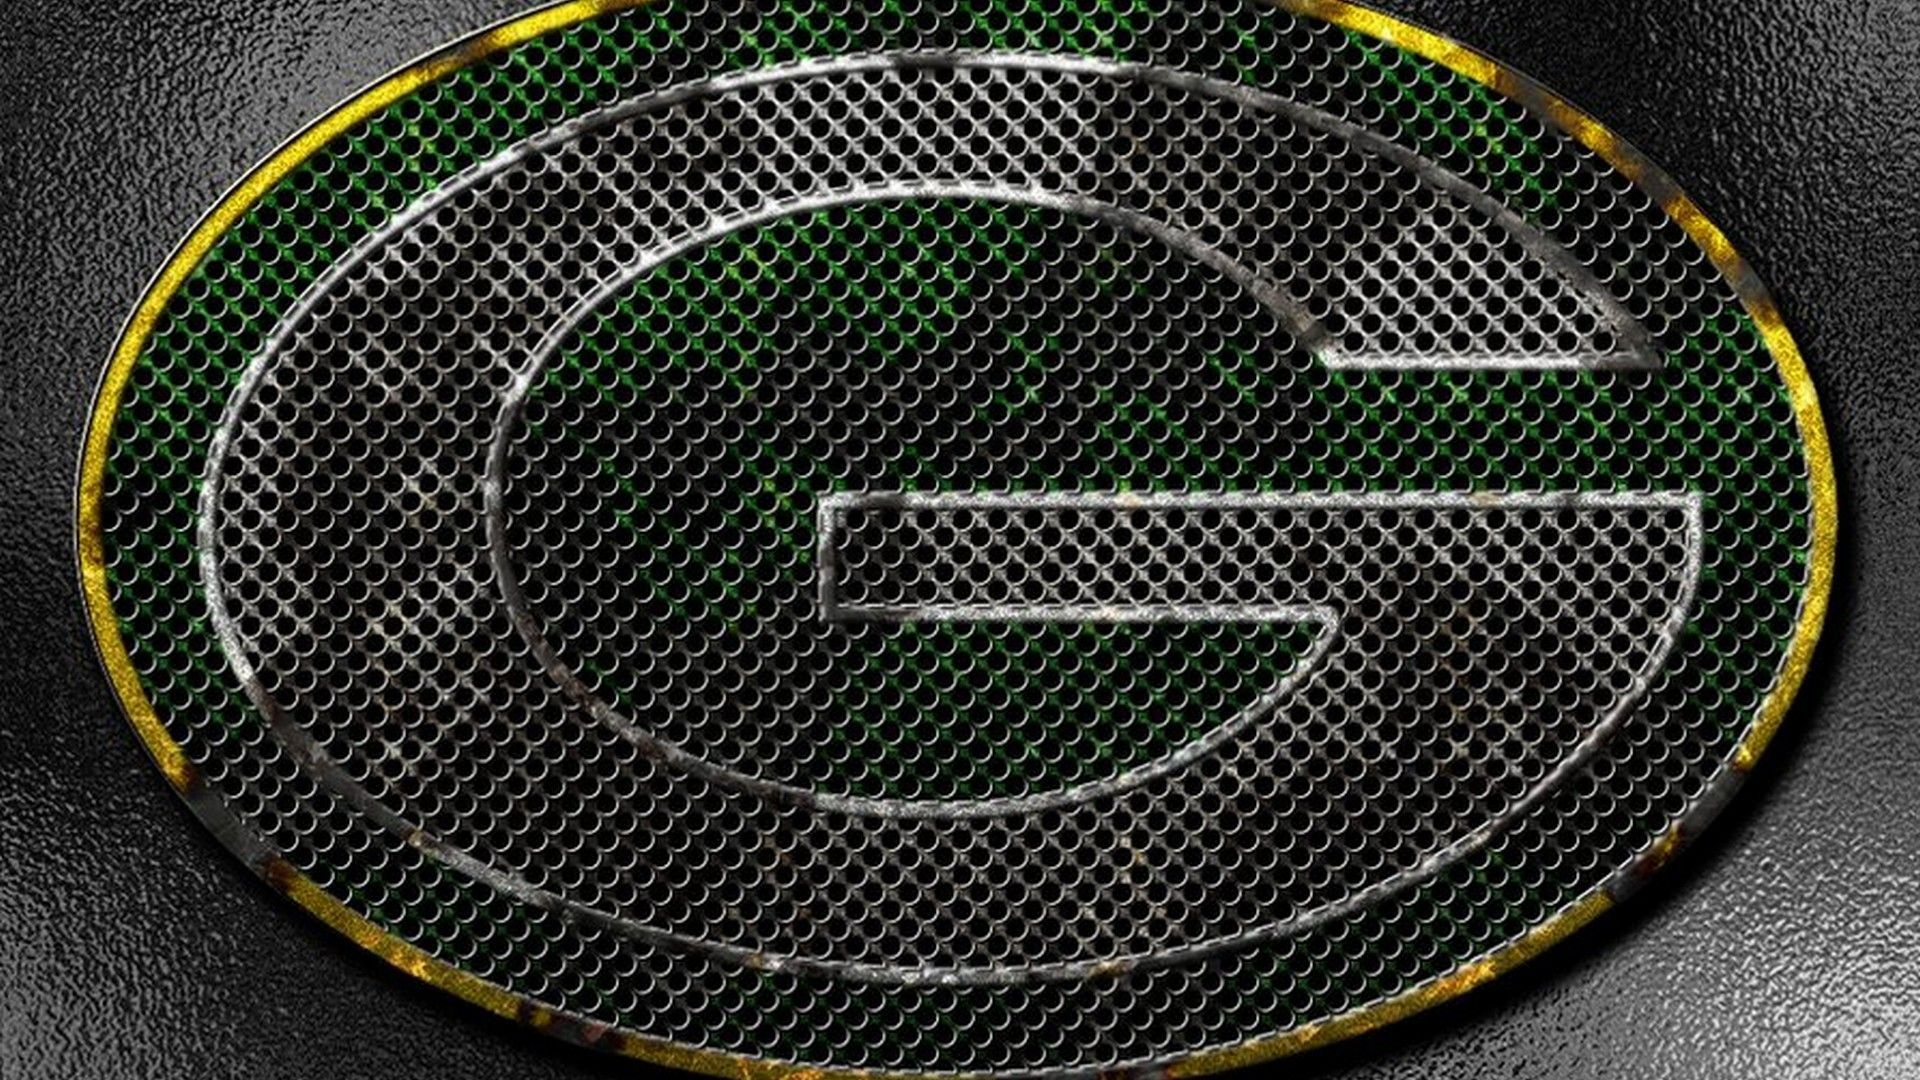 Wallpapers HD Green Bay Packers Green bay packers, Nfl